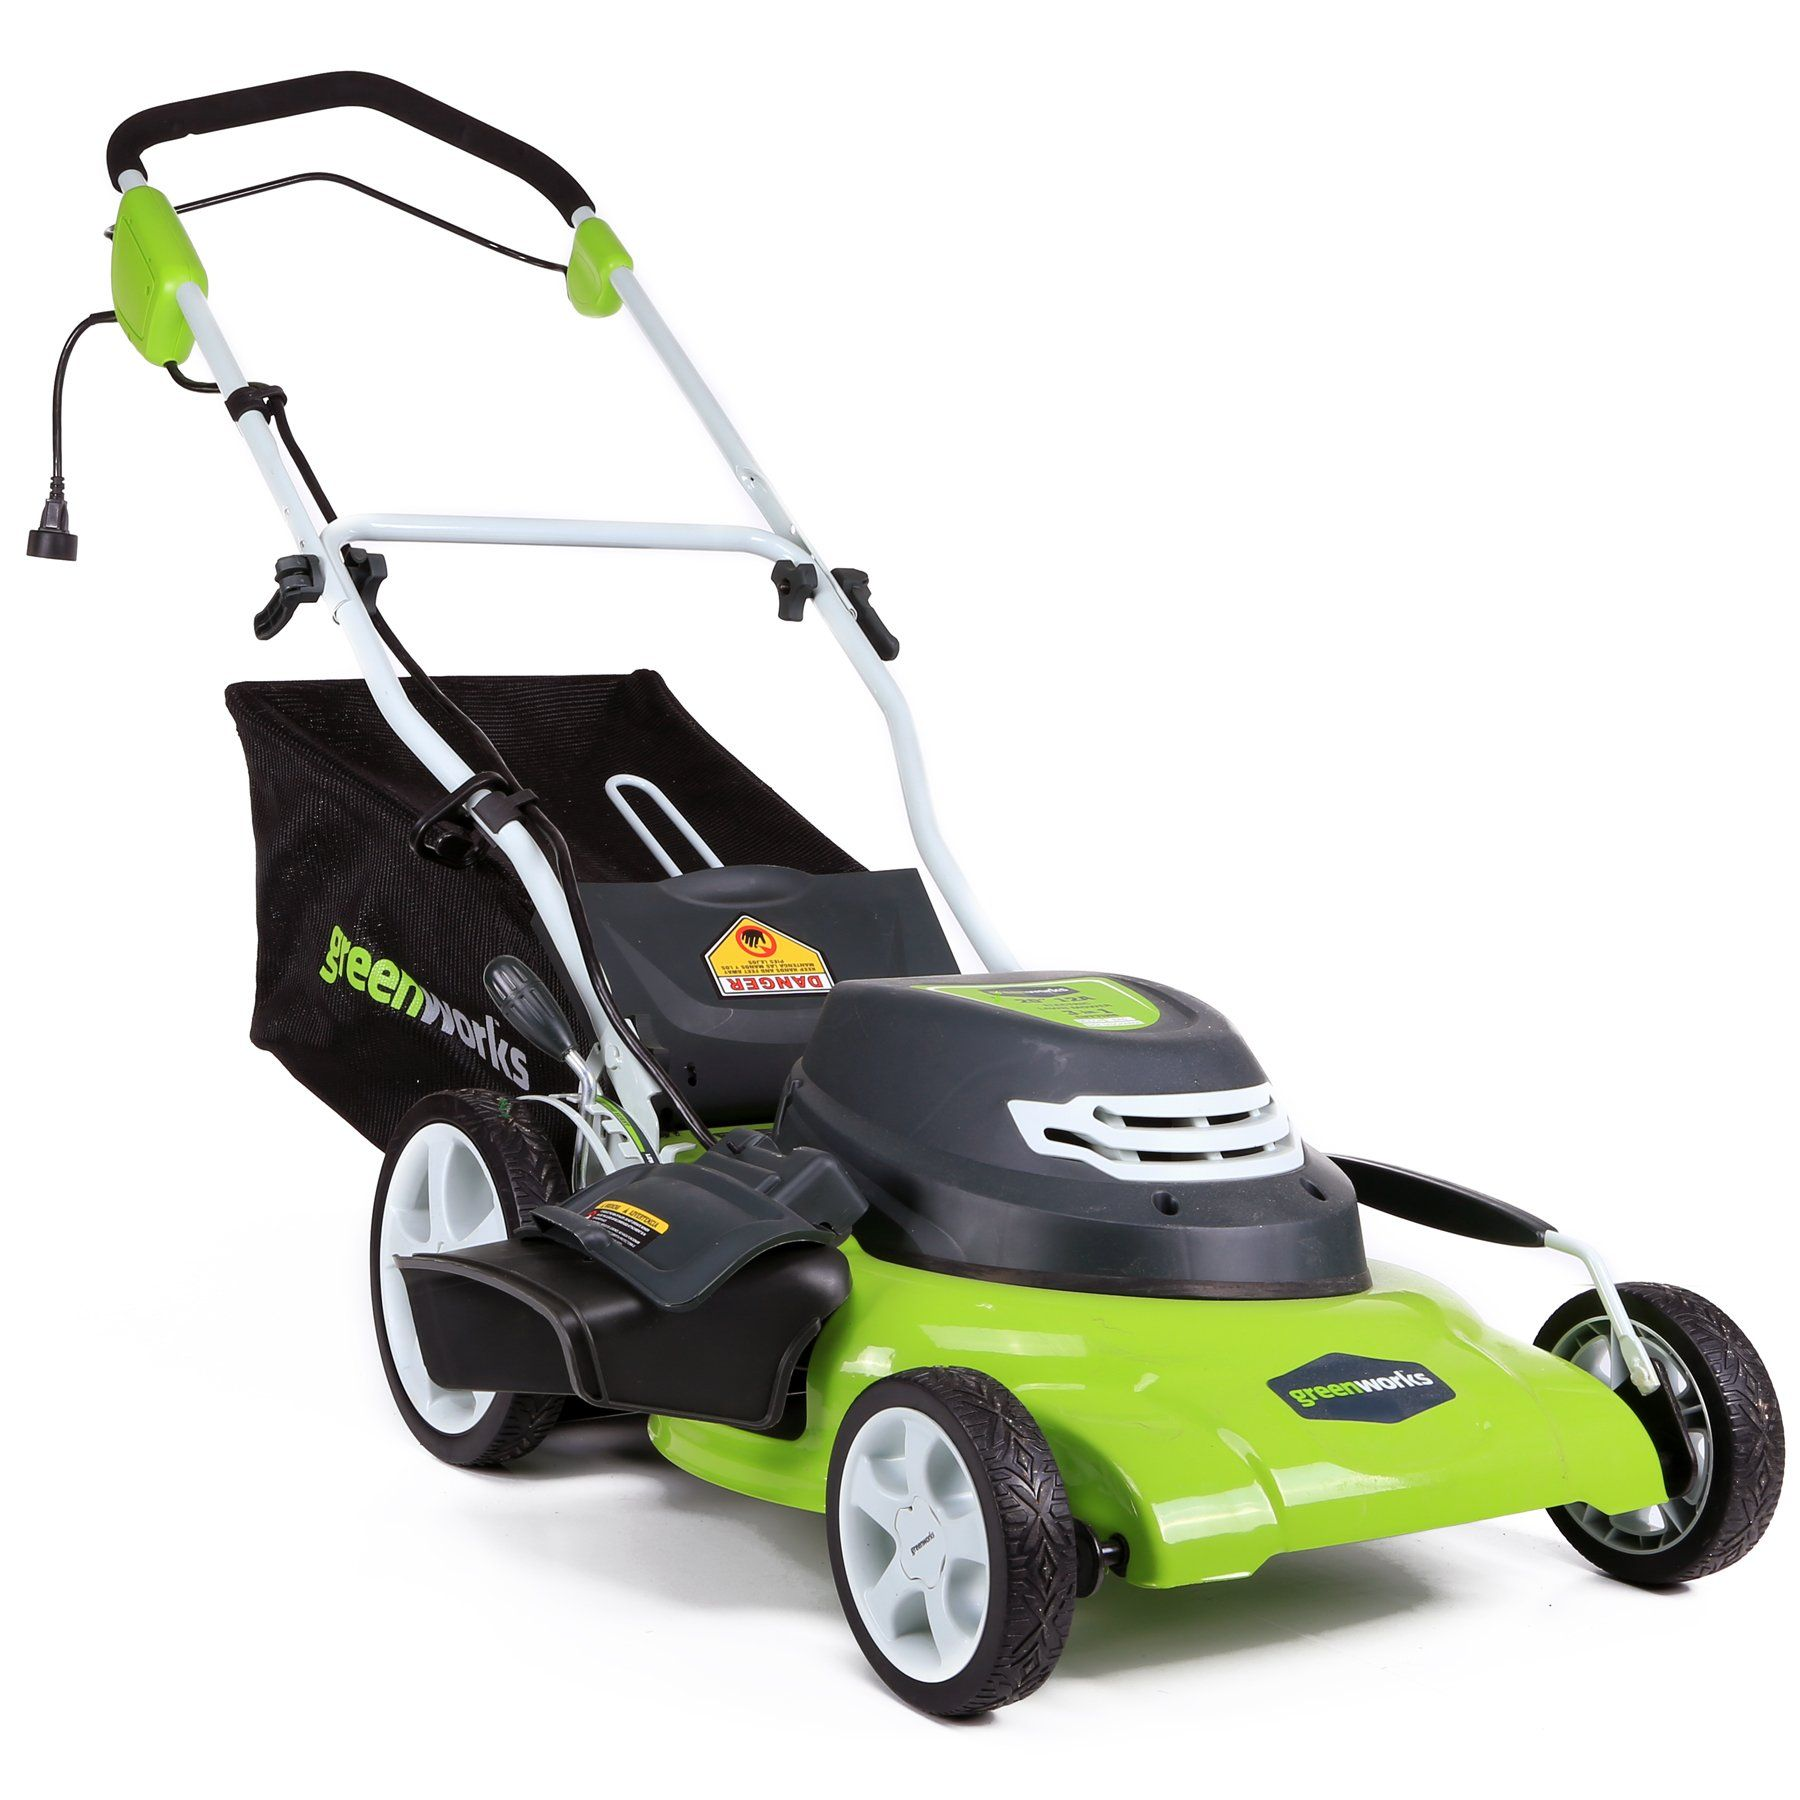 Greenworks 20Inch 12 Amp Corded Lawn Mower 25022 *** Find